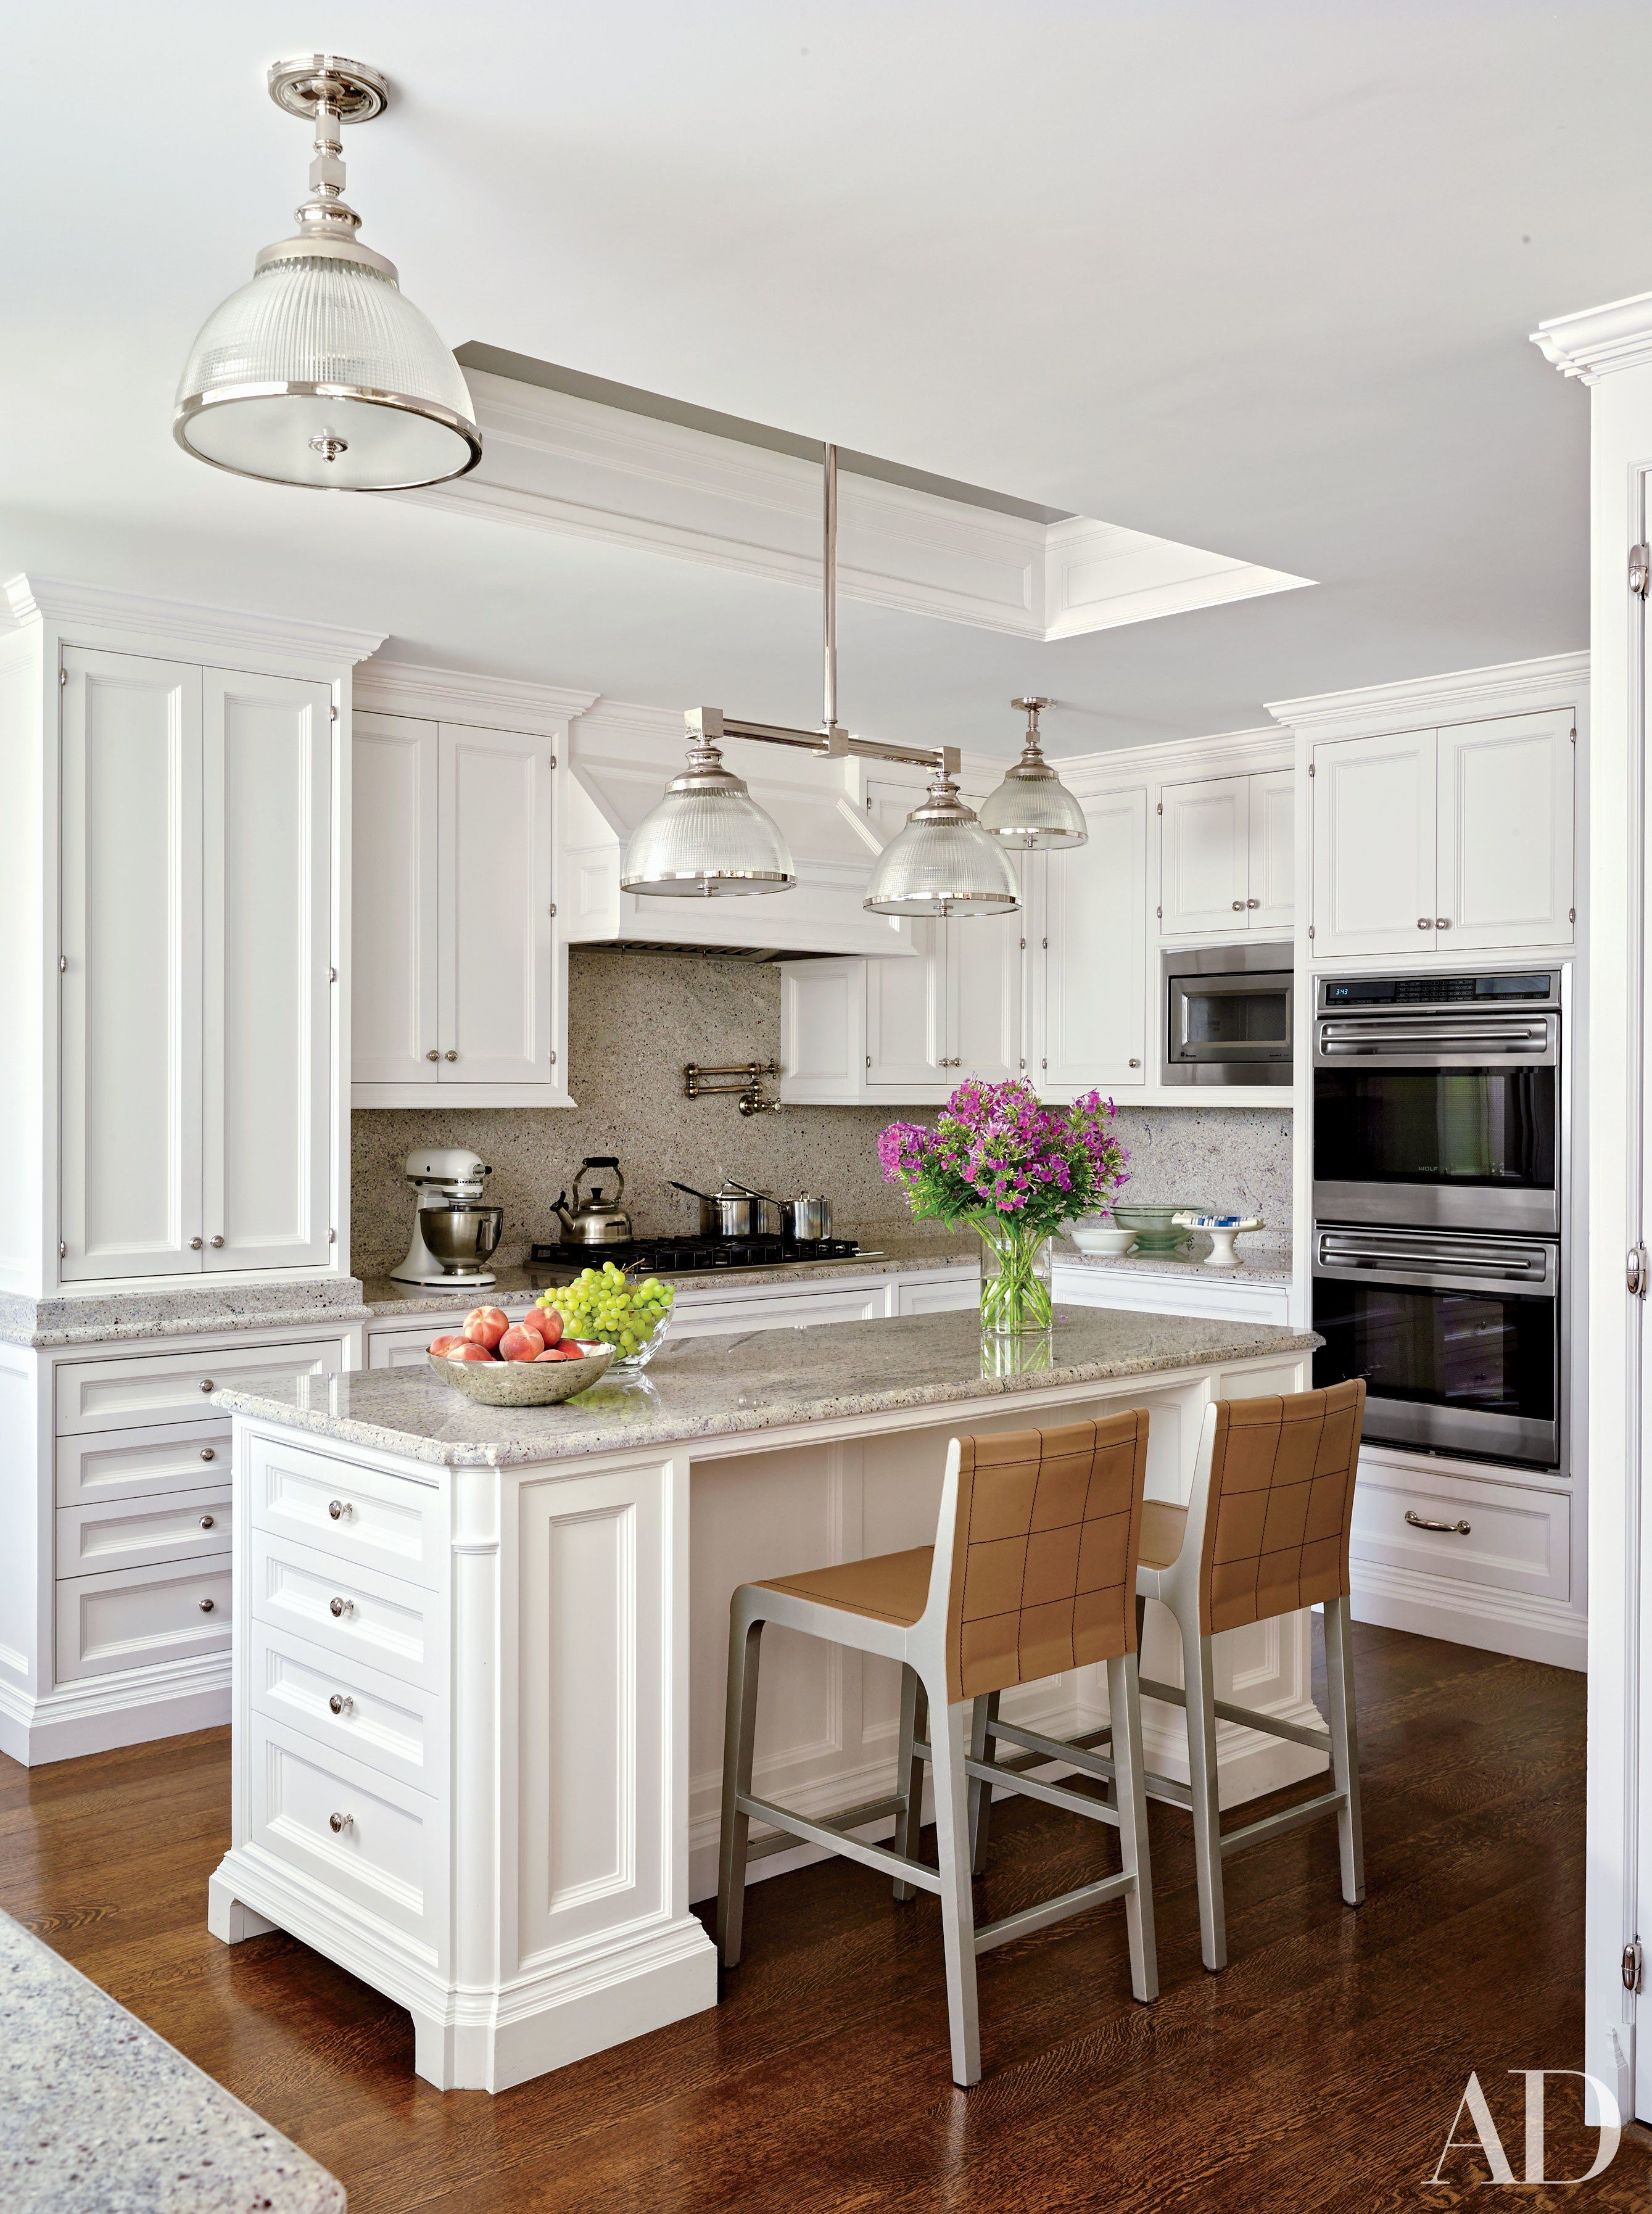 Kitchen Remodeling Manhattan Ny 13: 15 Spectacular Before And After Kitchen Makeovers